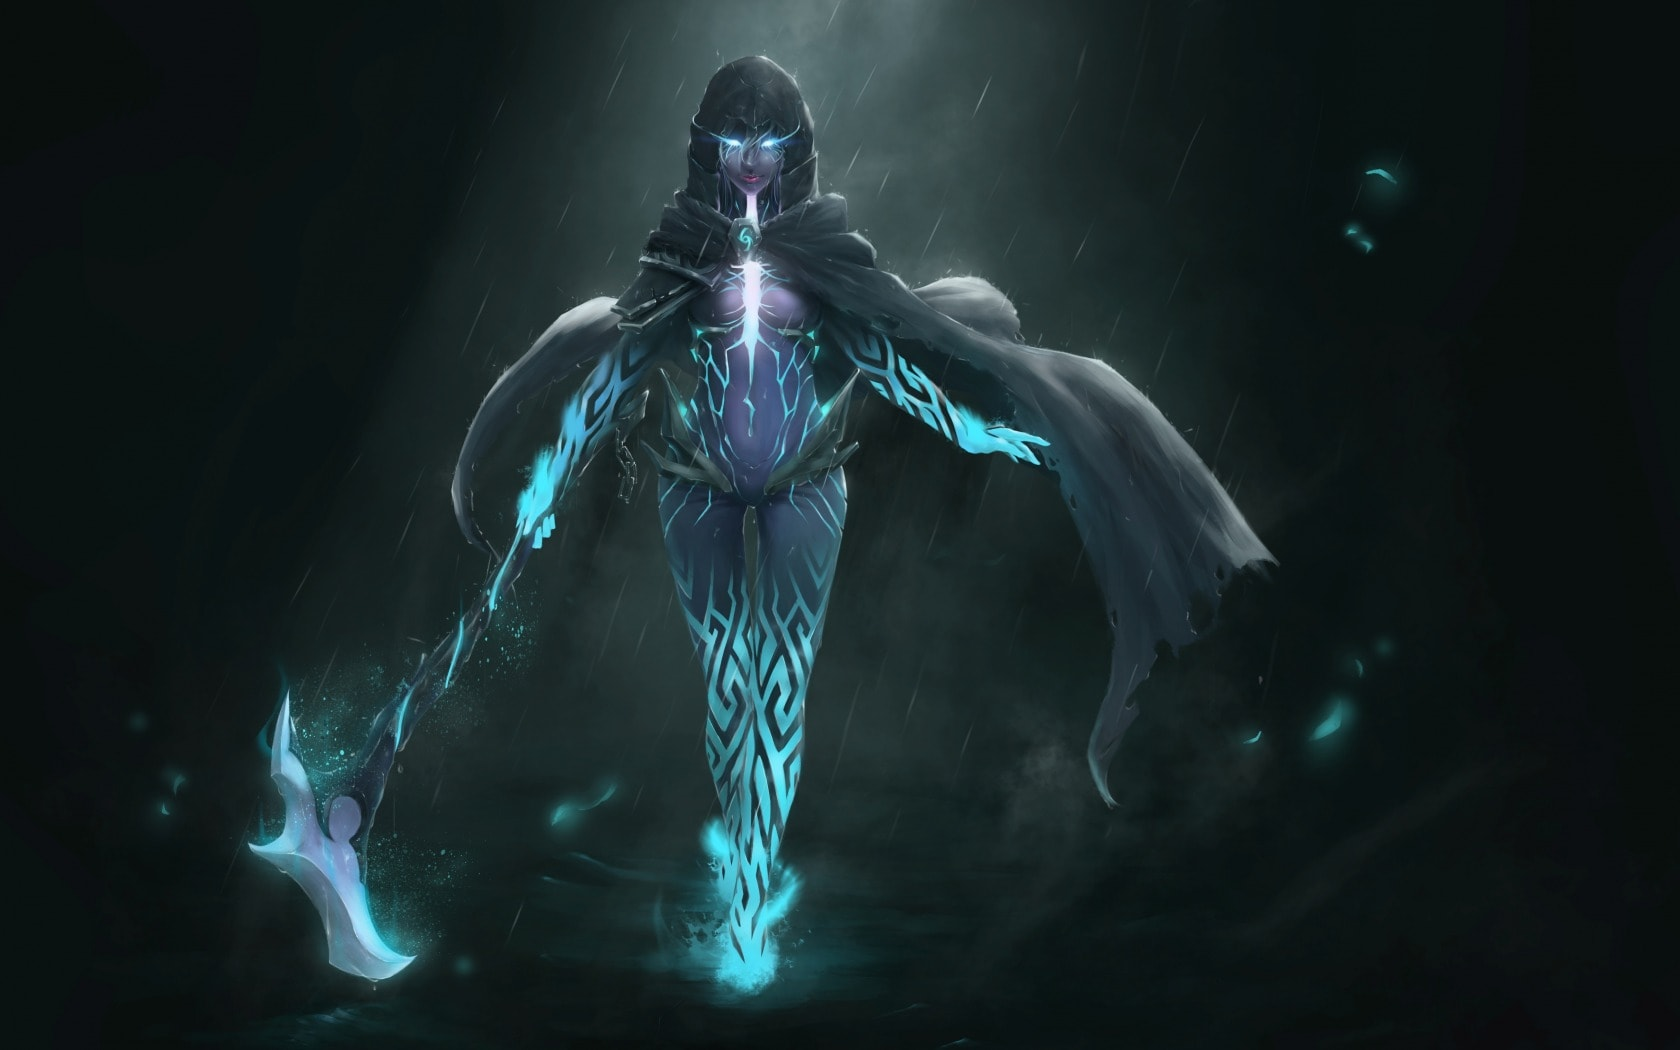 Dota2 : Phantom Assassin desktop wallpaper